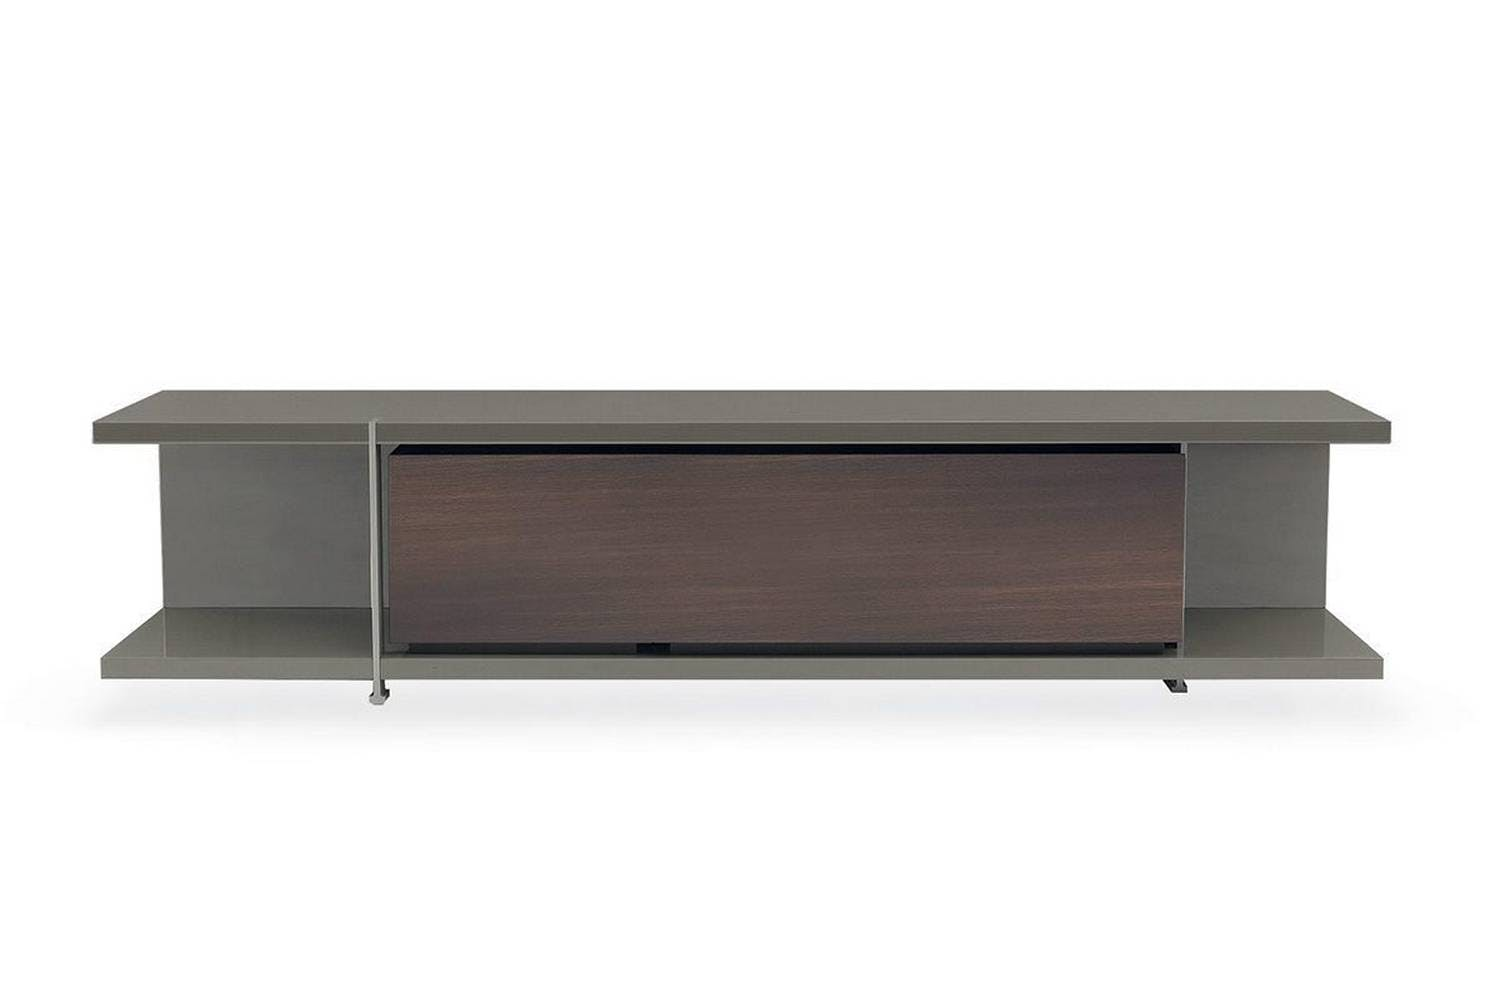 Bristol system sideboard by j m massaud for poliform for Product design consultancy bristol